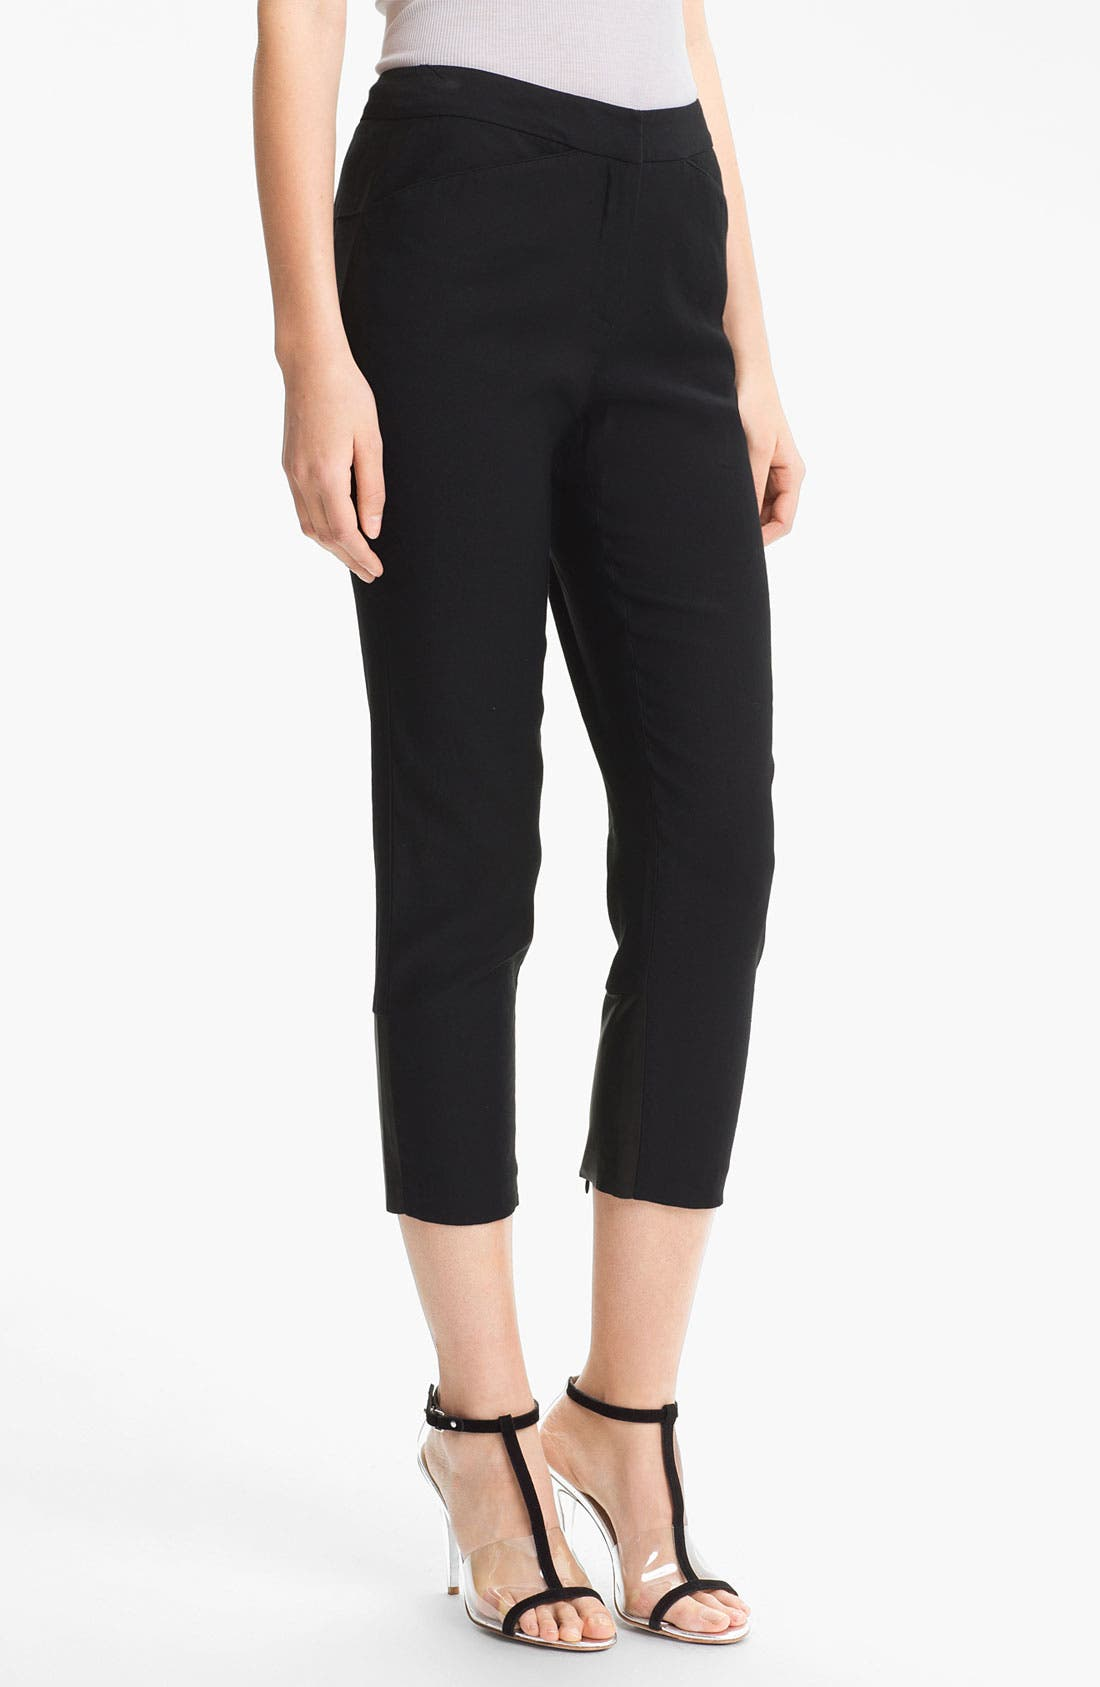 Alternate Image 1 Selected - Tracy Reese Stretch Linen Crop Pants